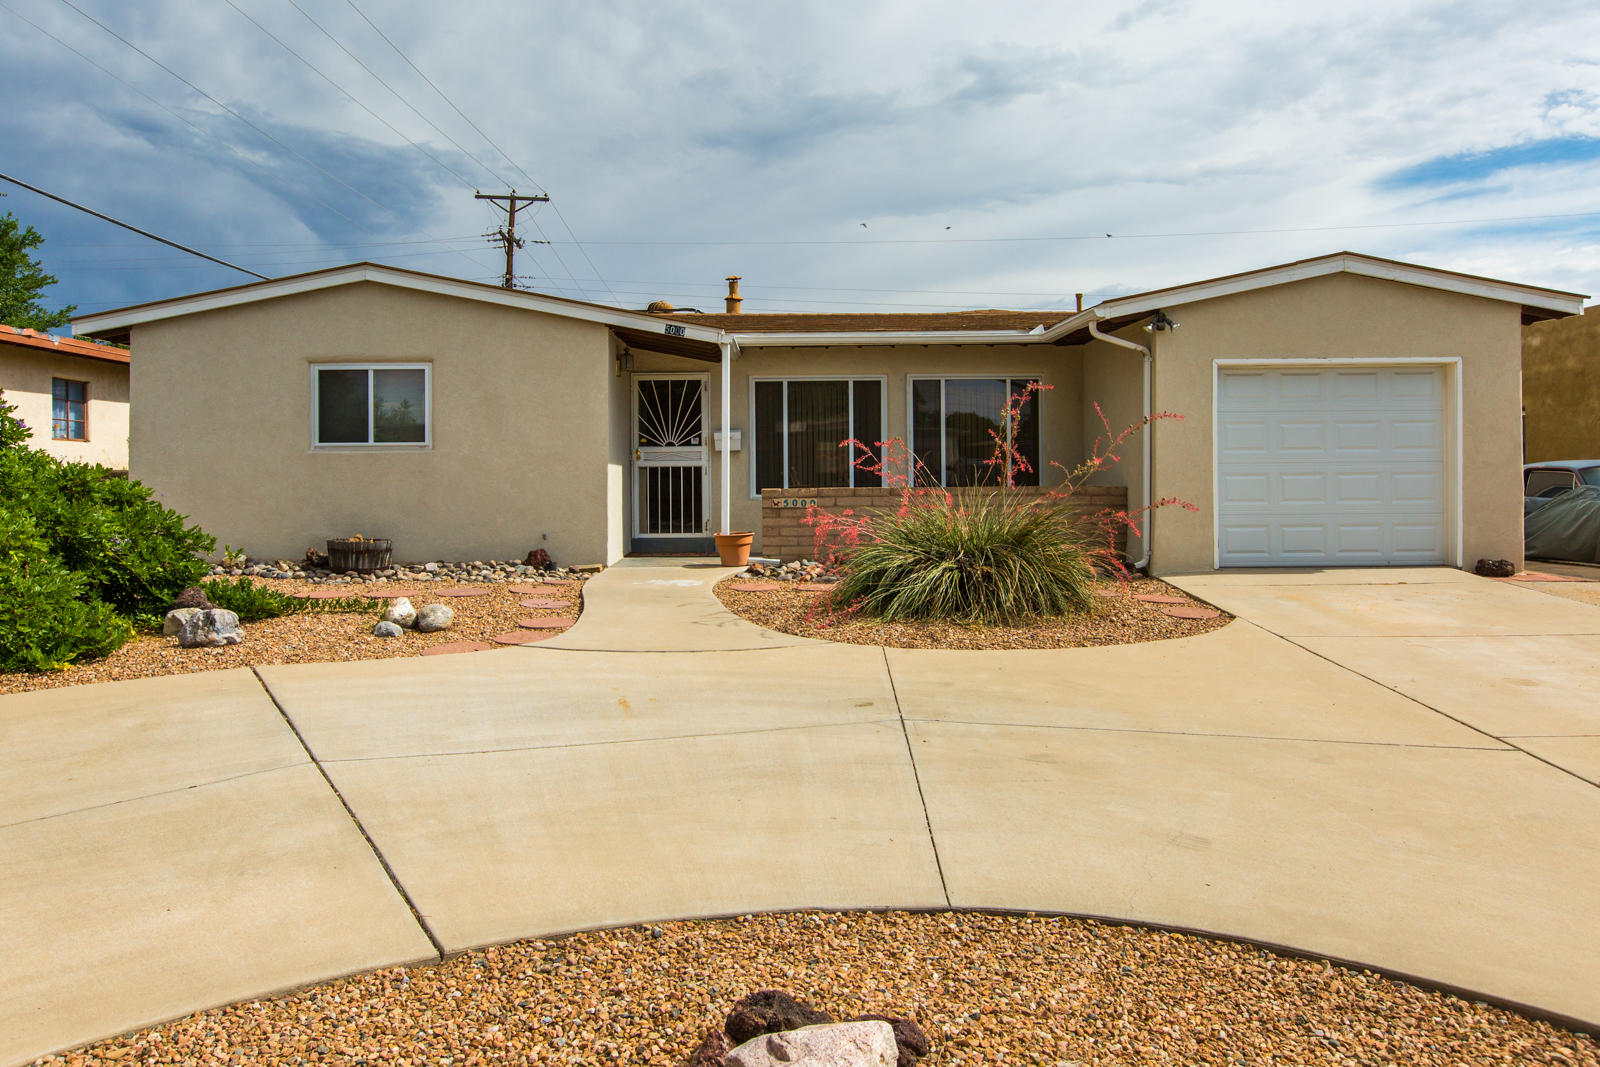 We are proud to present a new NE Heights Listing for sale.  Great Location, and nicely updated.  Newer HVAC with refrigerated air, 2014 new metal roof with warranty, newer windows, and flooring,.  Bathroom remodel just completed.  3 Bedrooms plus a 2 living areas, and 330sf Bonus room  not in the square footage.